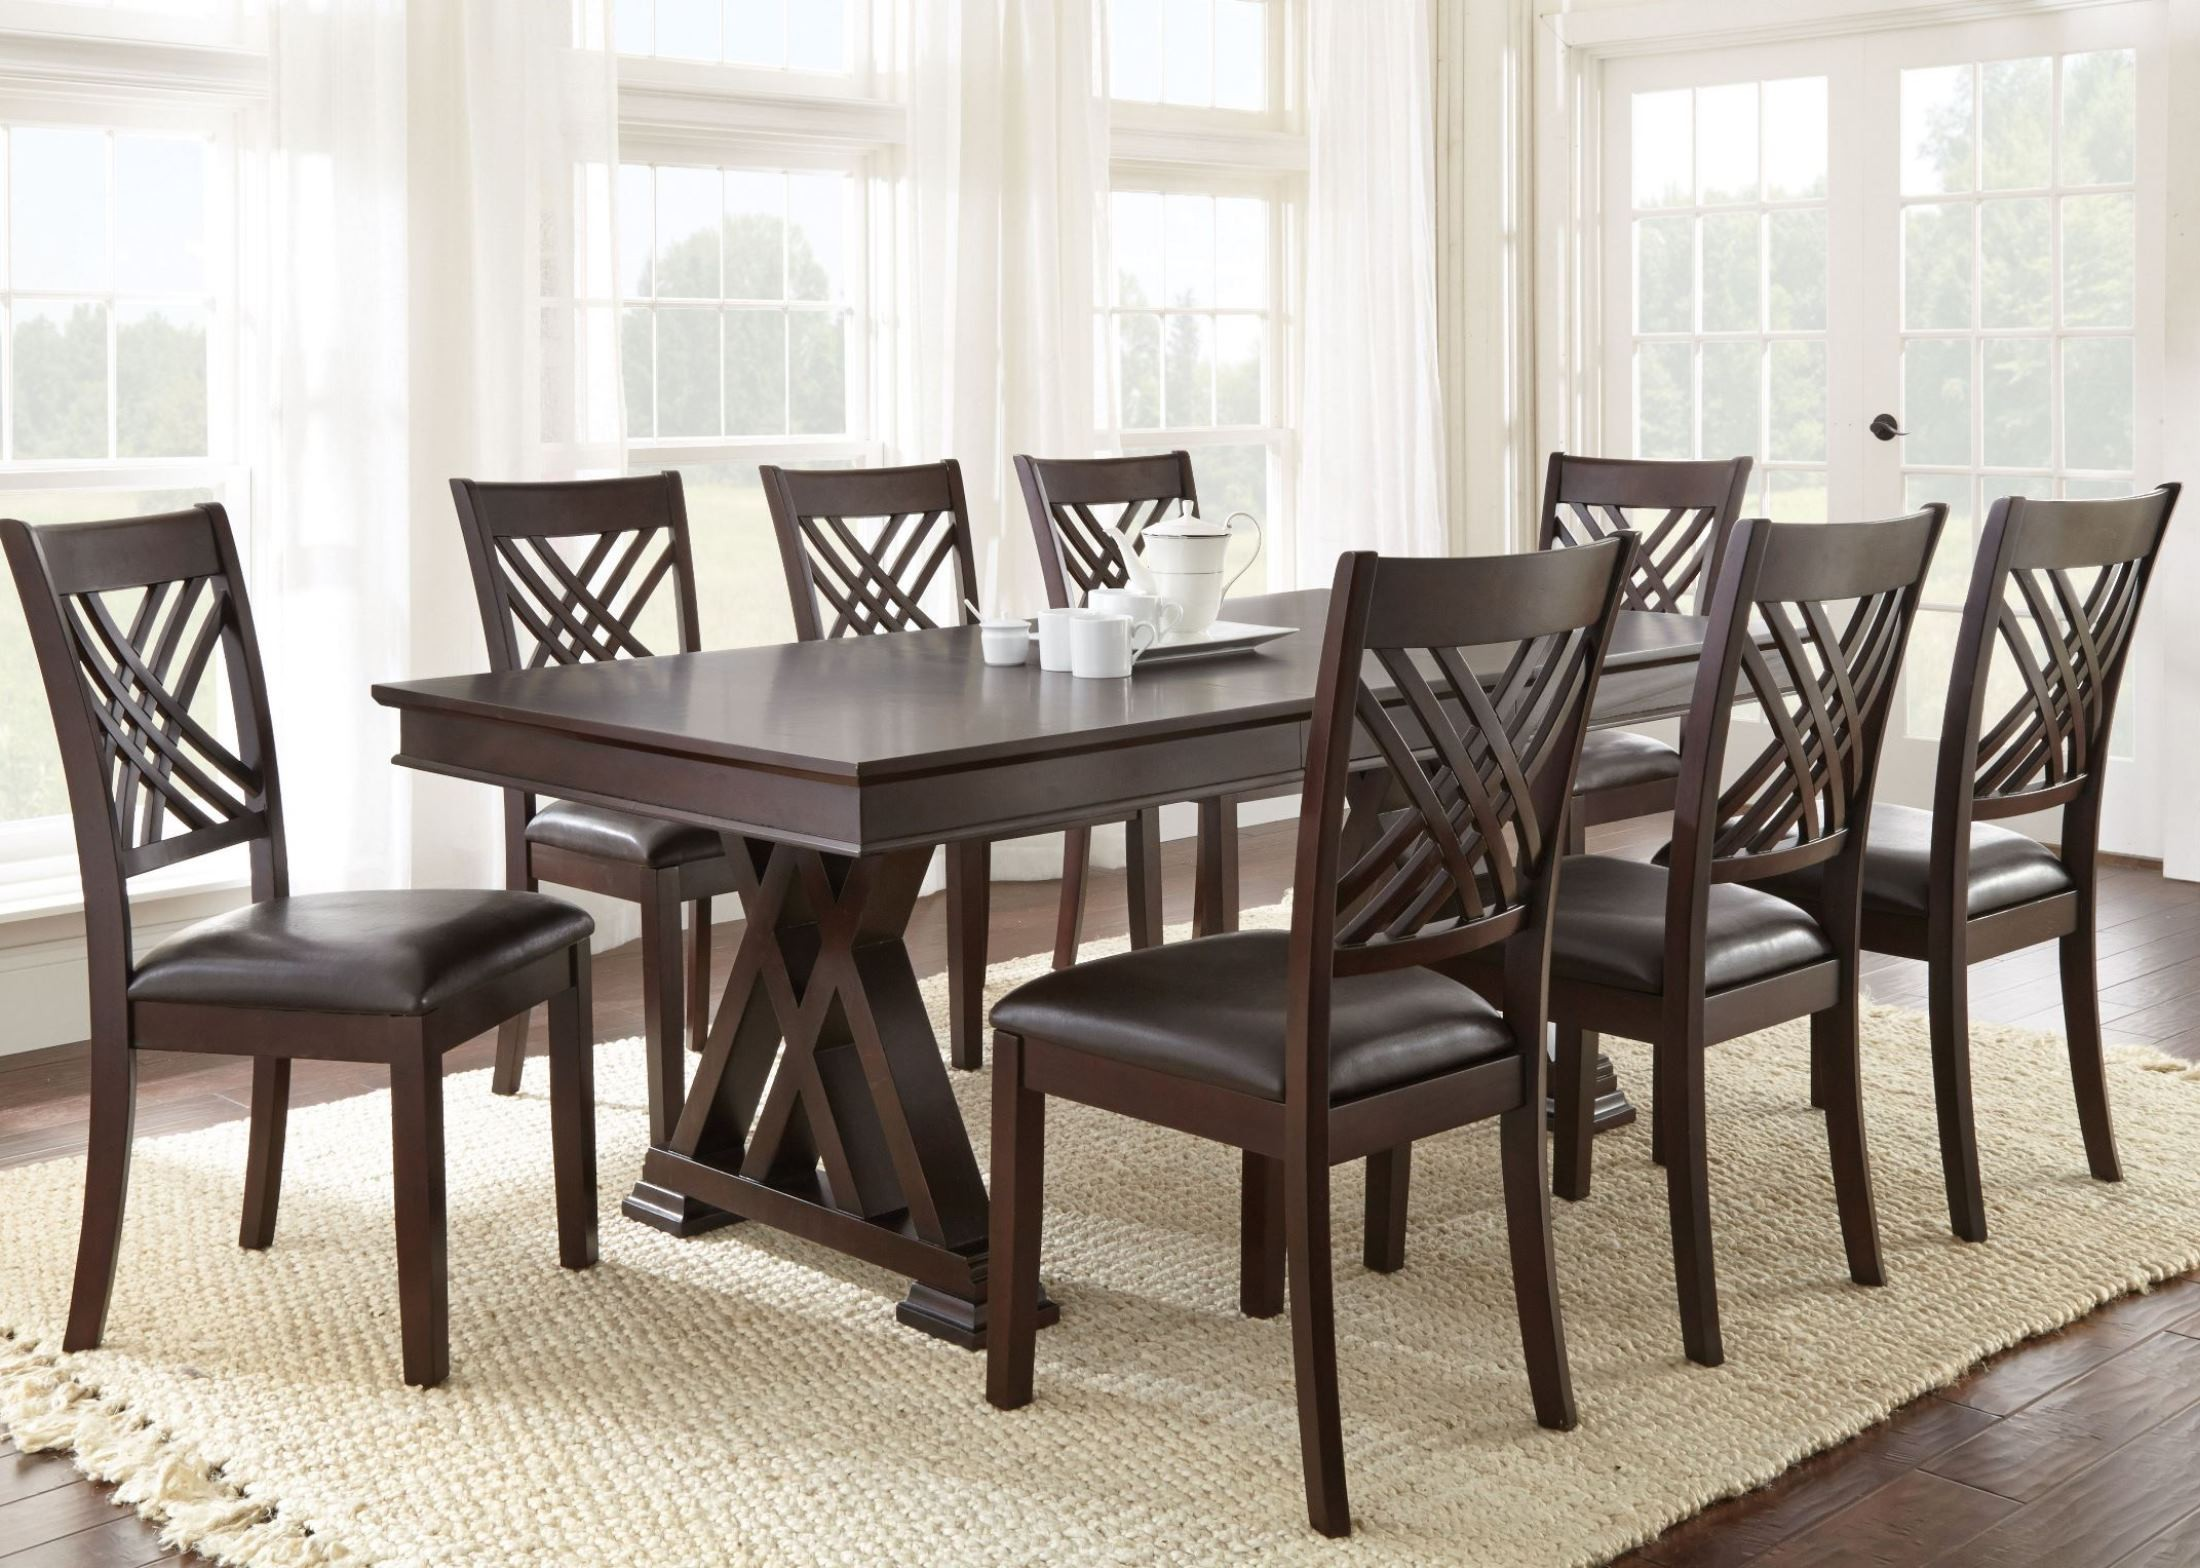 Rectangle Dining Room Tables Kitchen Room Furniture Sets For Sale Dining Room Furniture